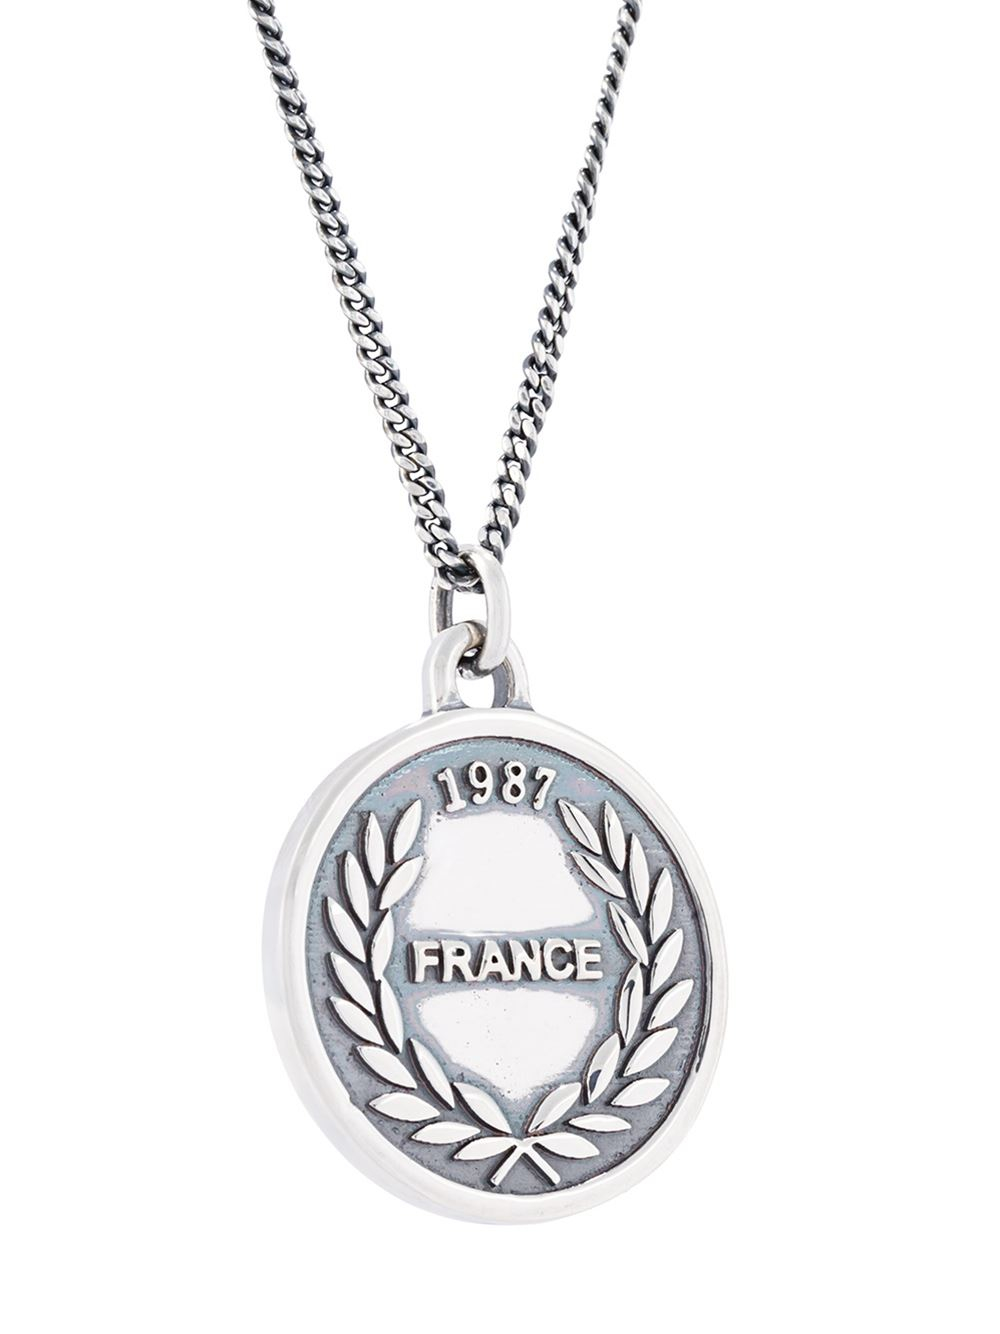 A.P.C. 'money' Charm Necklace in Metallic